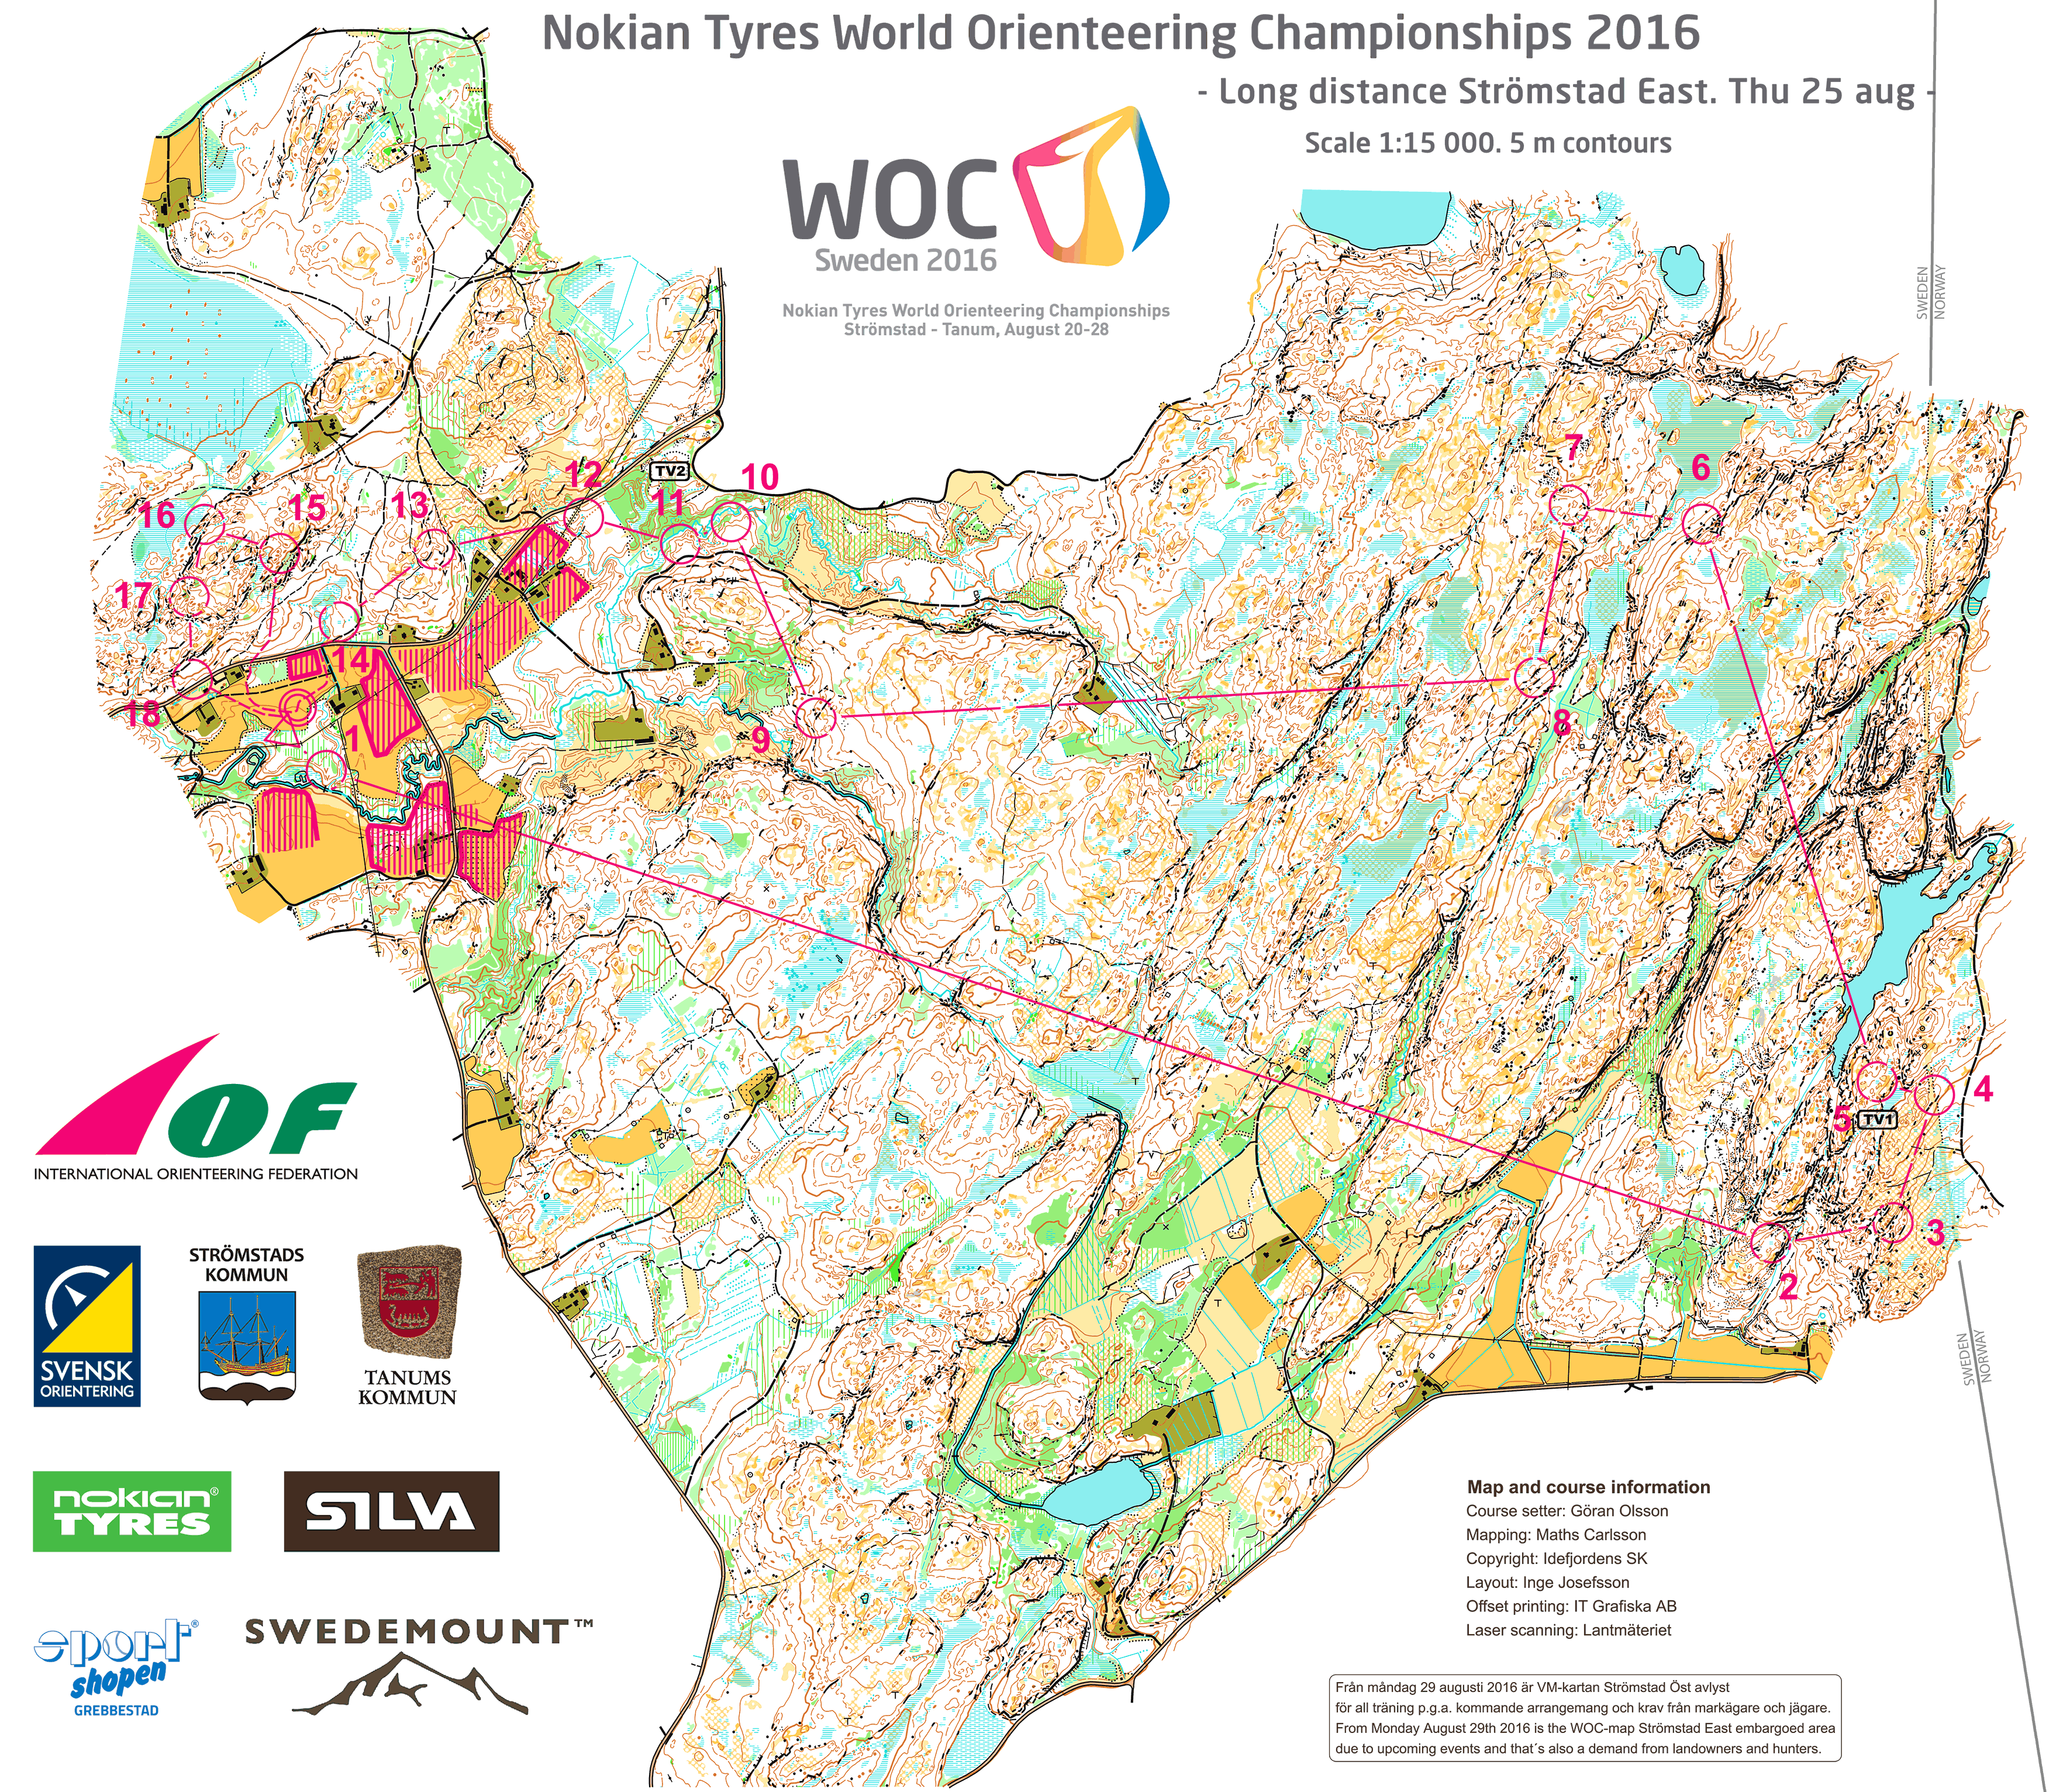 Woc 2016 long maps and results world of o news see map in omapsofo biocorpaavc